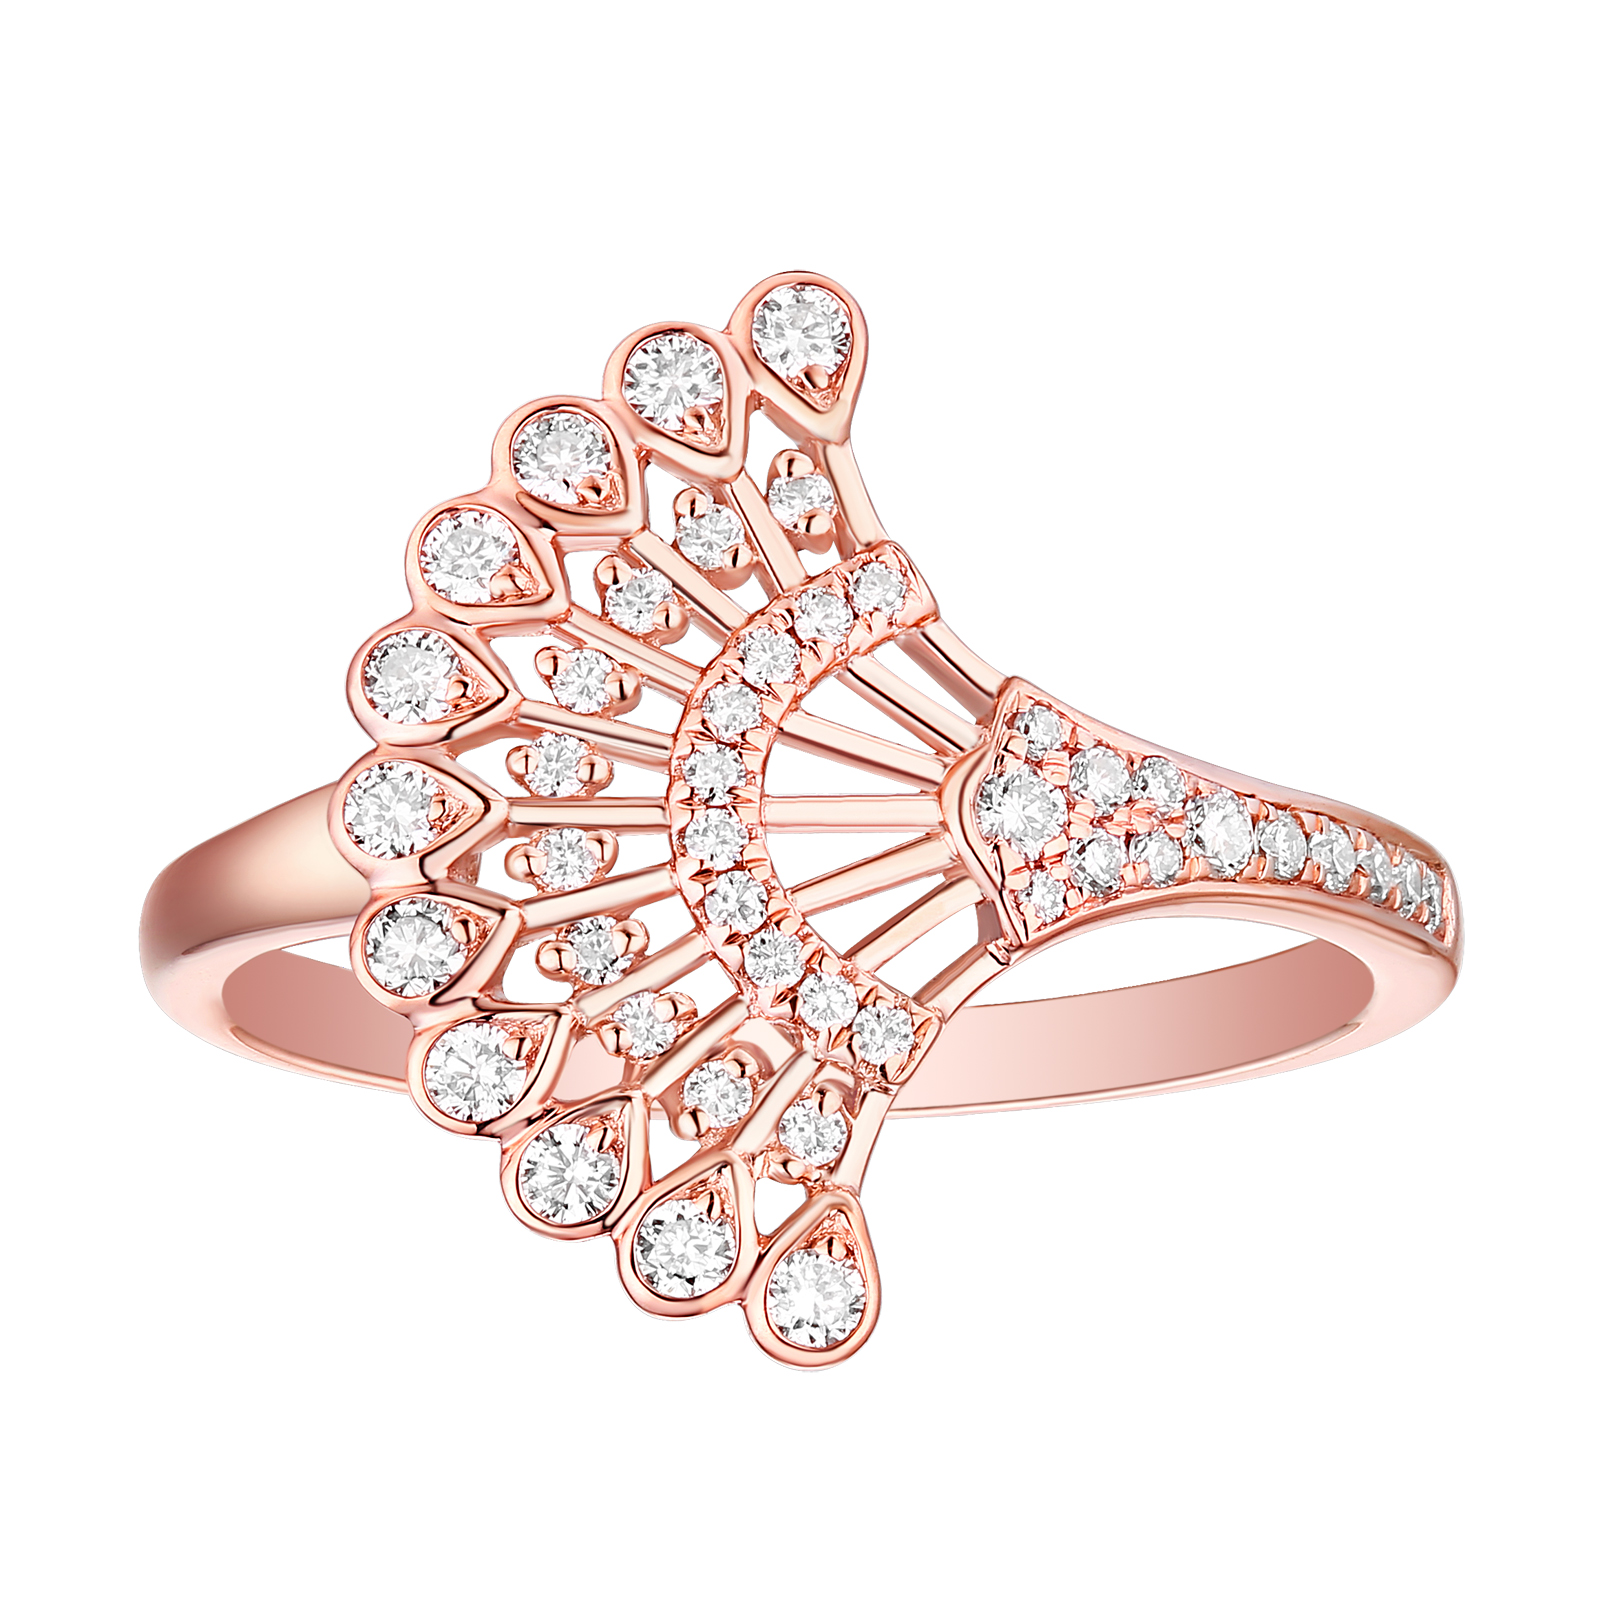 R29907WHT- 14K Rose Gold Diamond Ring, 0.31 TCW